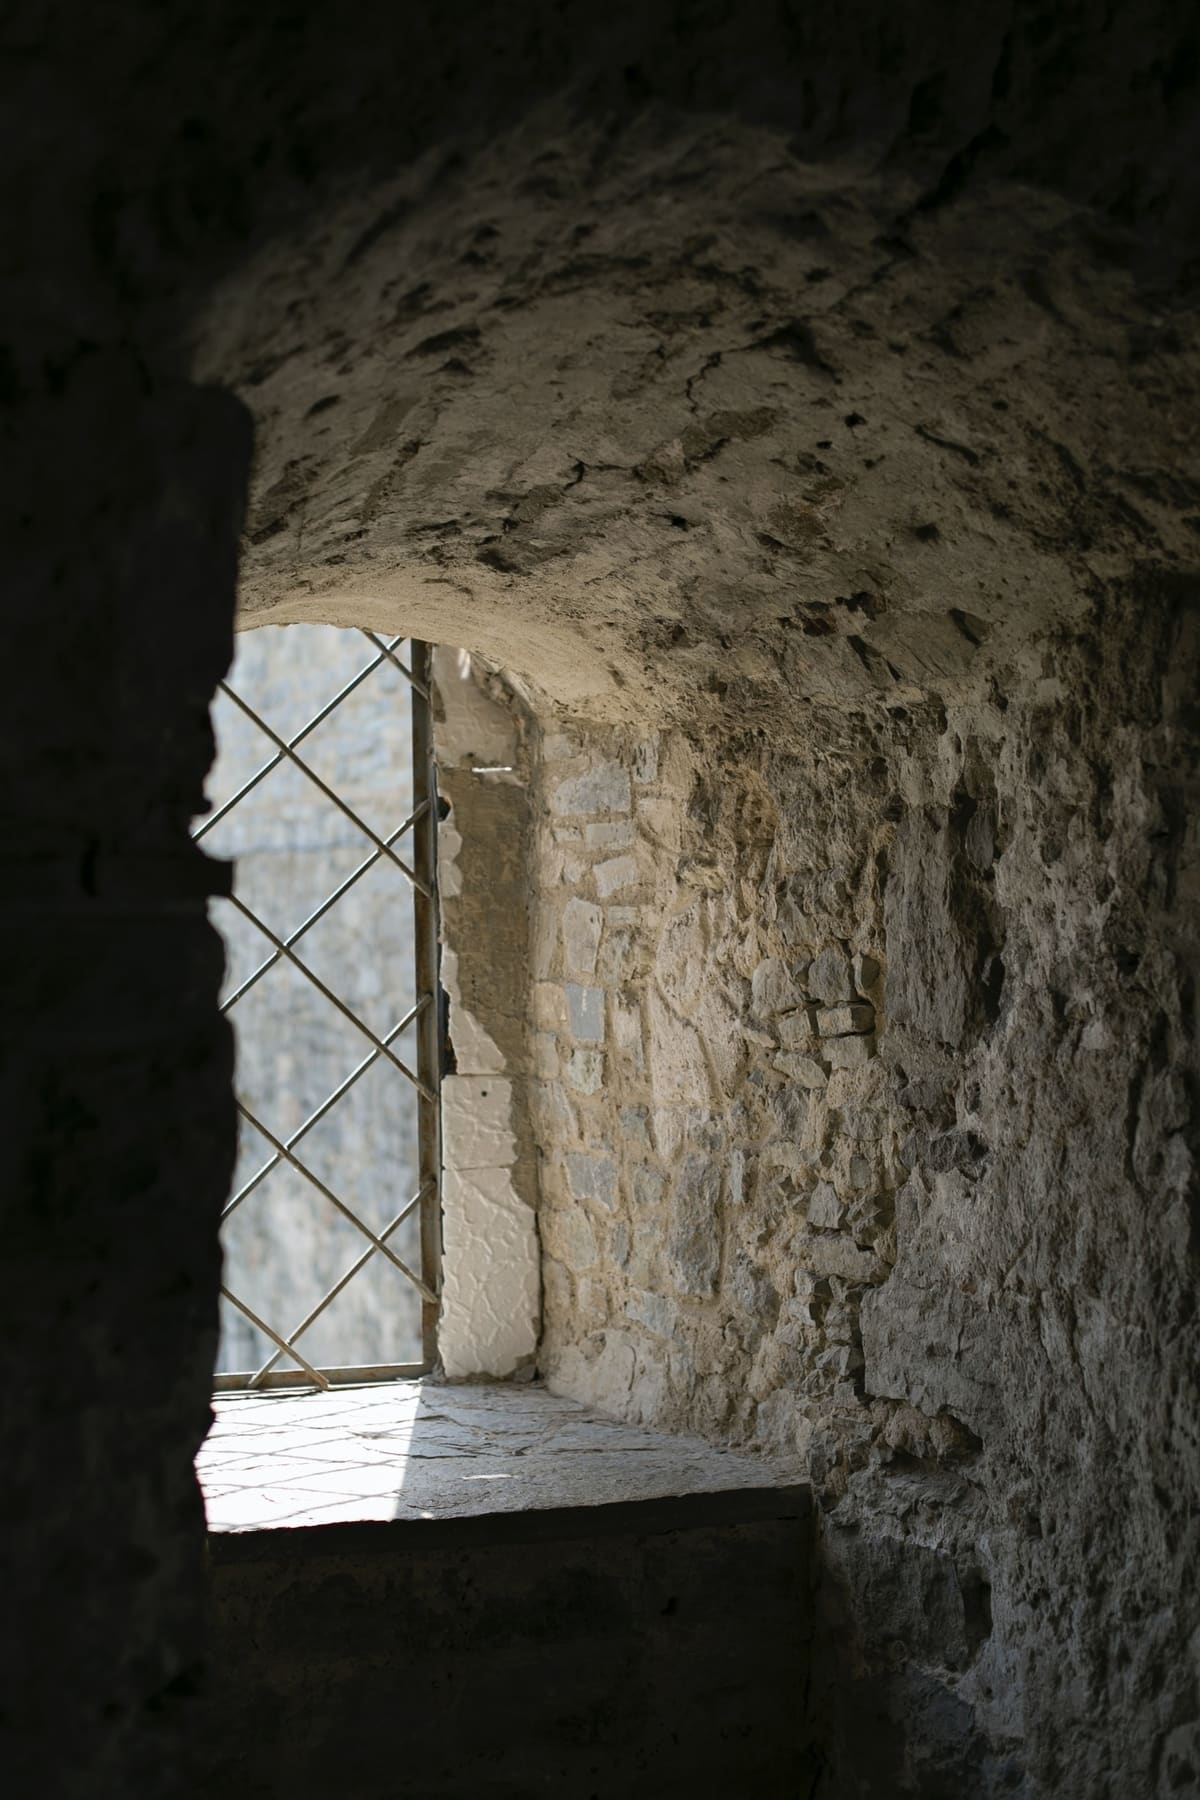 Window from the Kamianets-Podilskyi Castle in Ukraine